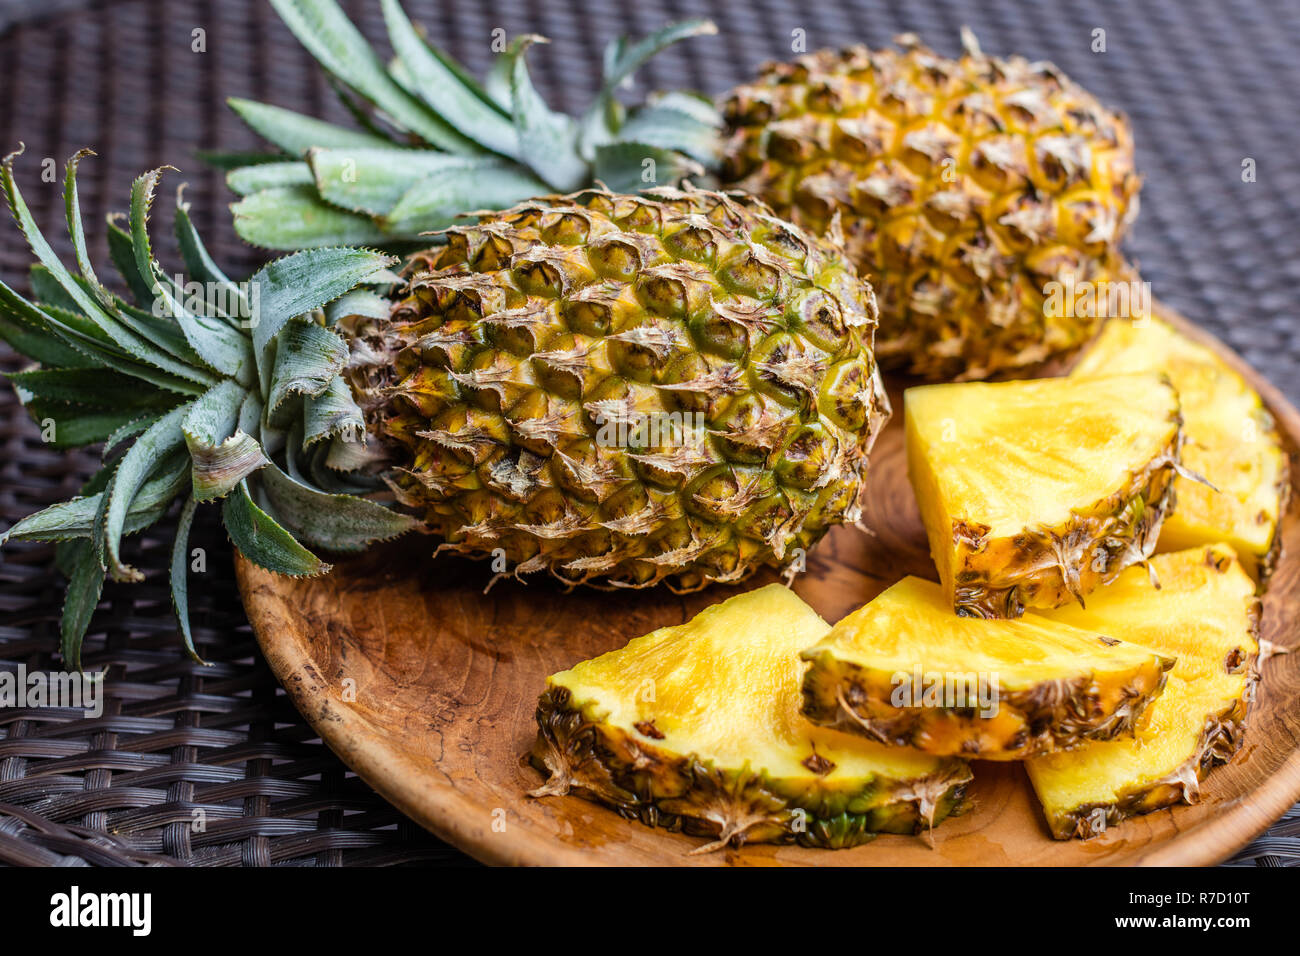 Two Whole Pineapples And Big Cut Pieces On A Round Wooden Tray Over